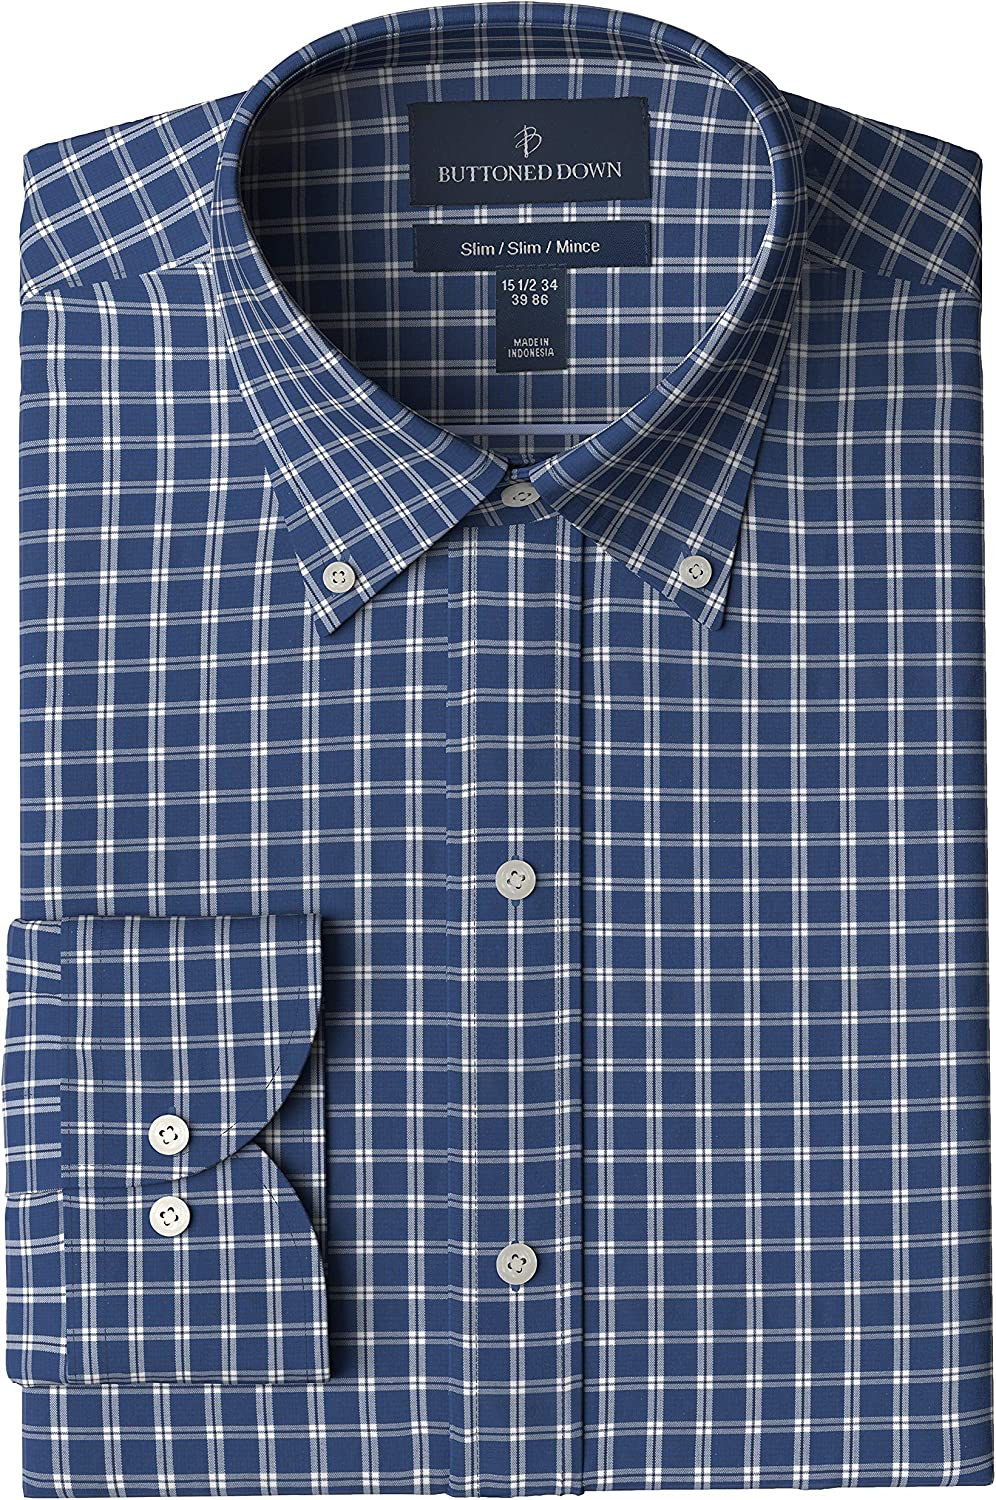 Buttoned Down Men's Slim Fit Pattern Dress オリジナル Button 1着でも送料無料 Collar Shirt